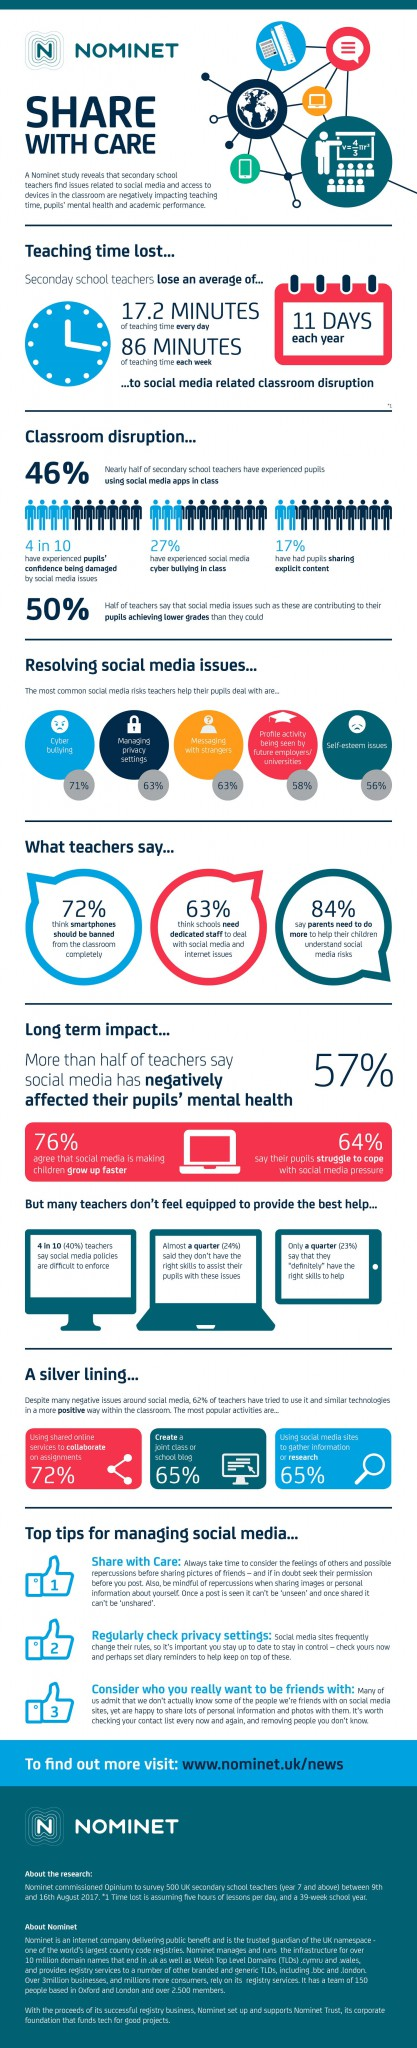 Nominet illustrated infographic share with care